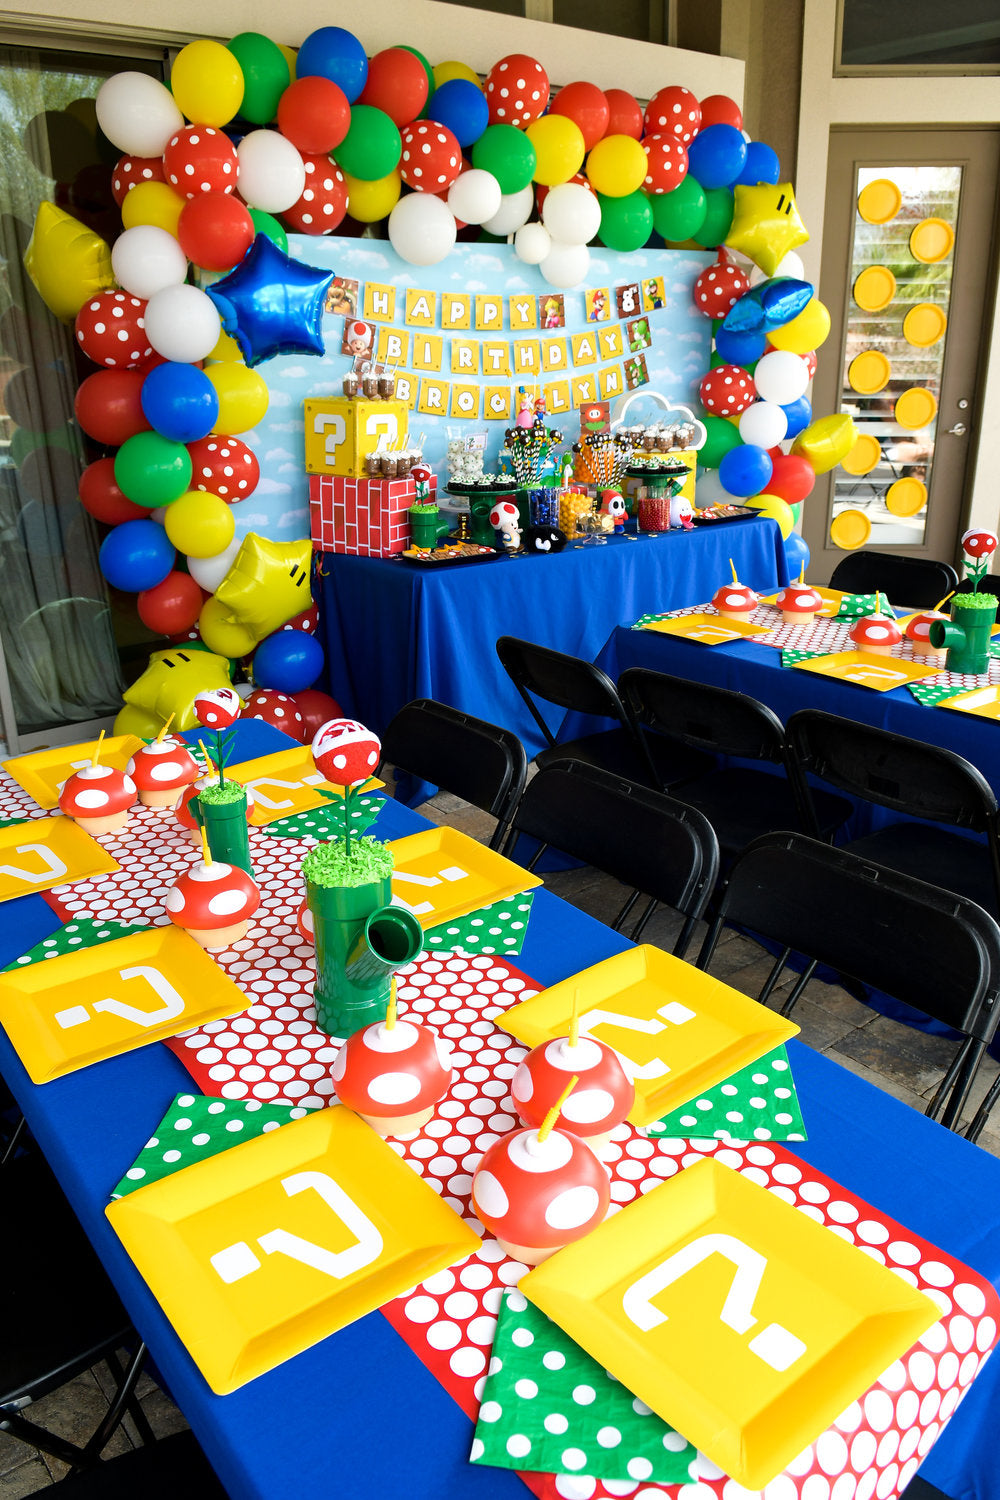 Super Mario Bros decorated party space with decorated tables